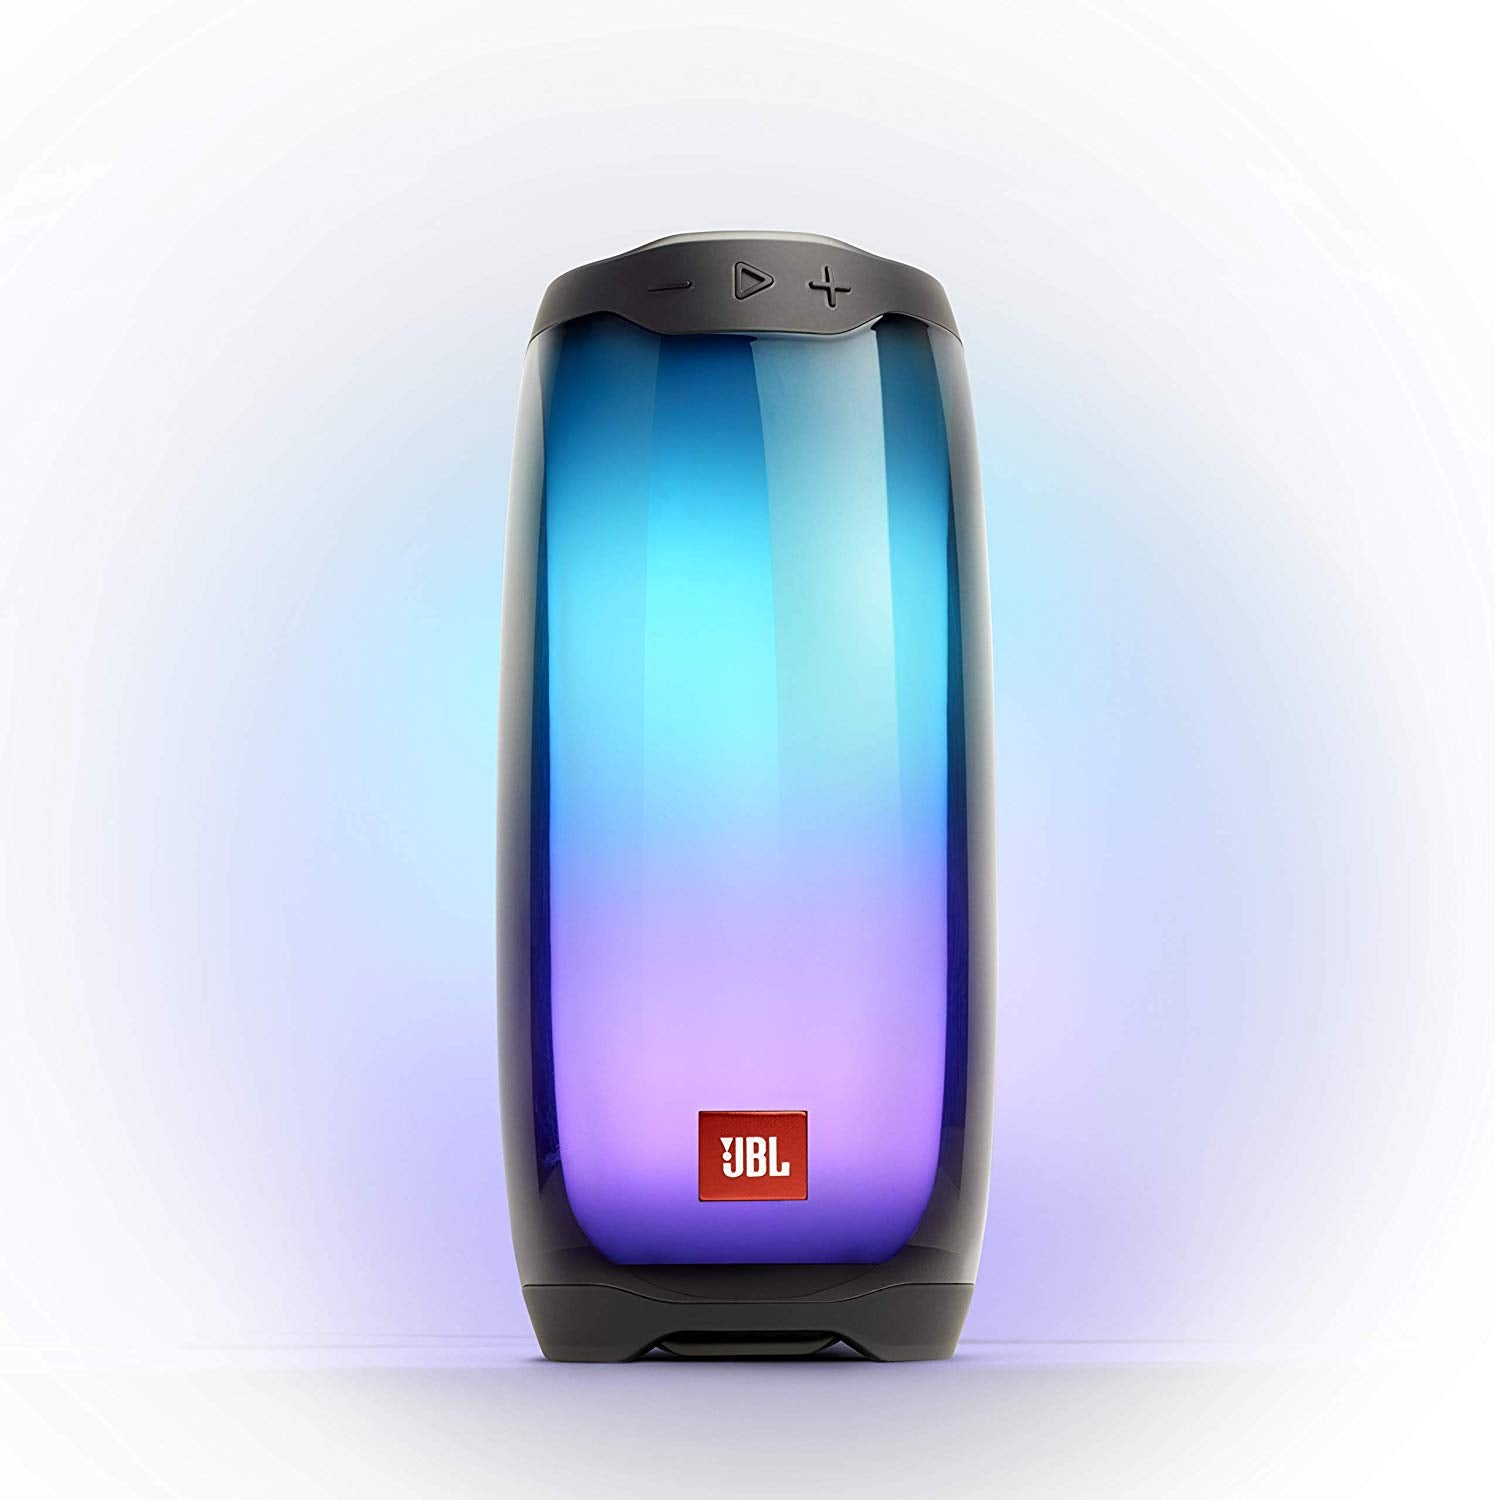 JBL Pulse 4 Portable Bluetooth Speaker with LEDs - Black - OPEN BOX